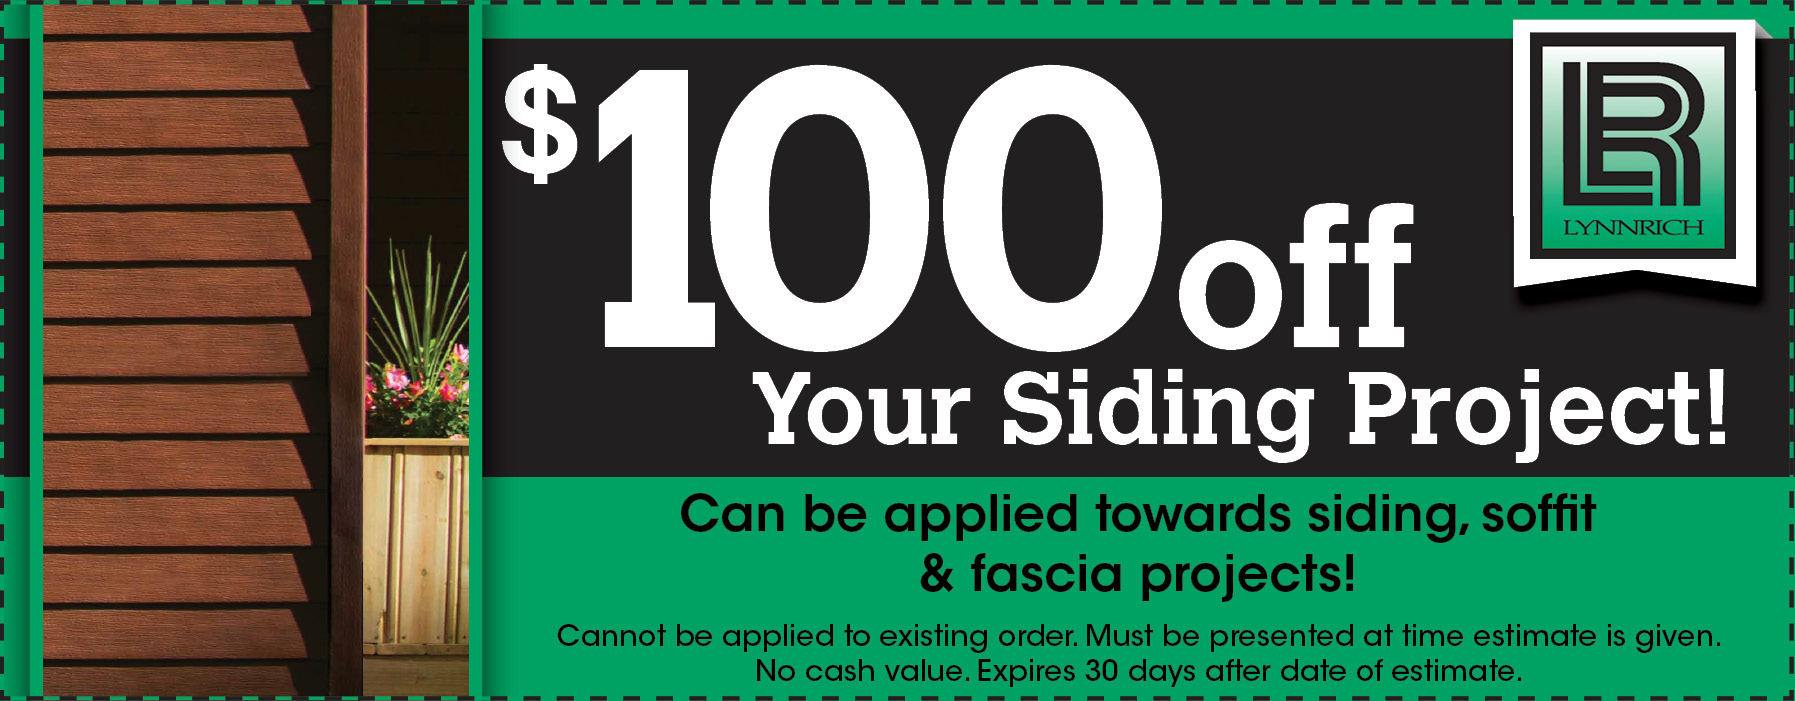 Billings montana siding promotion